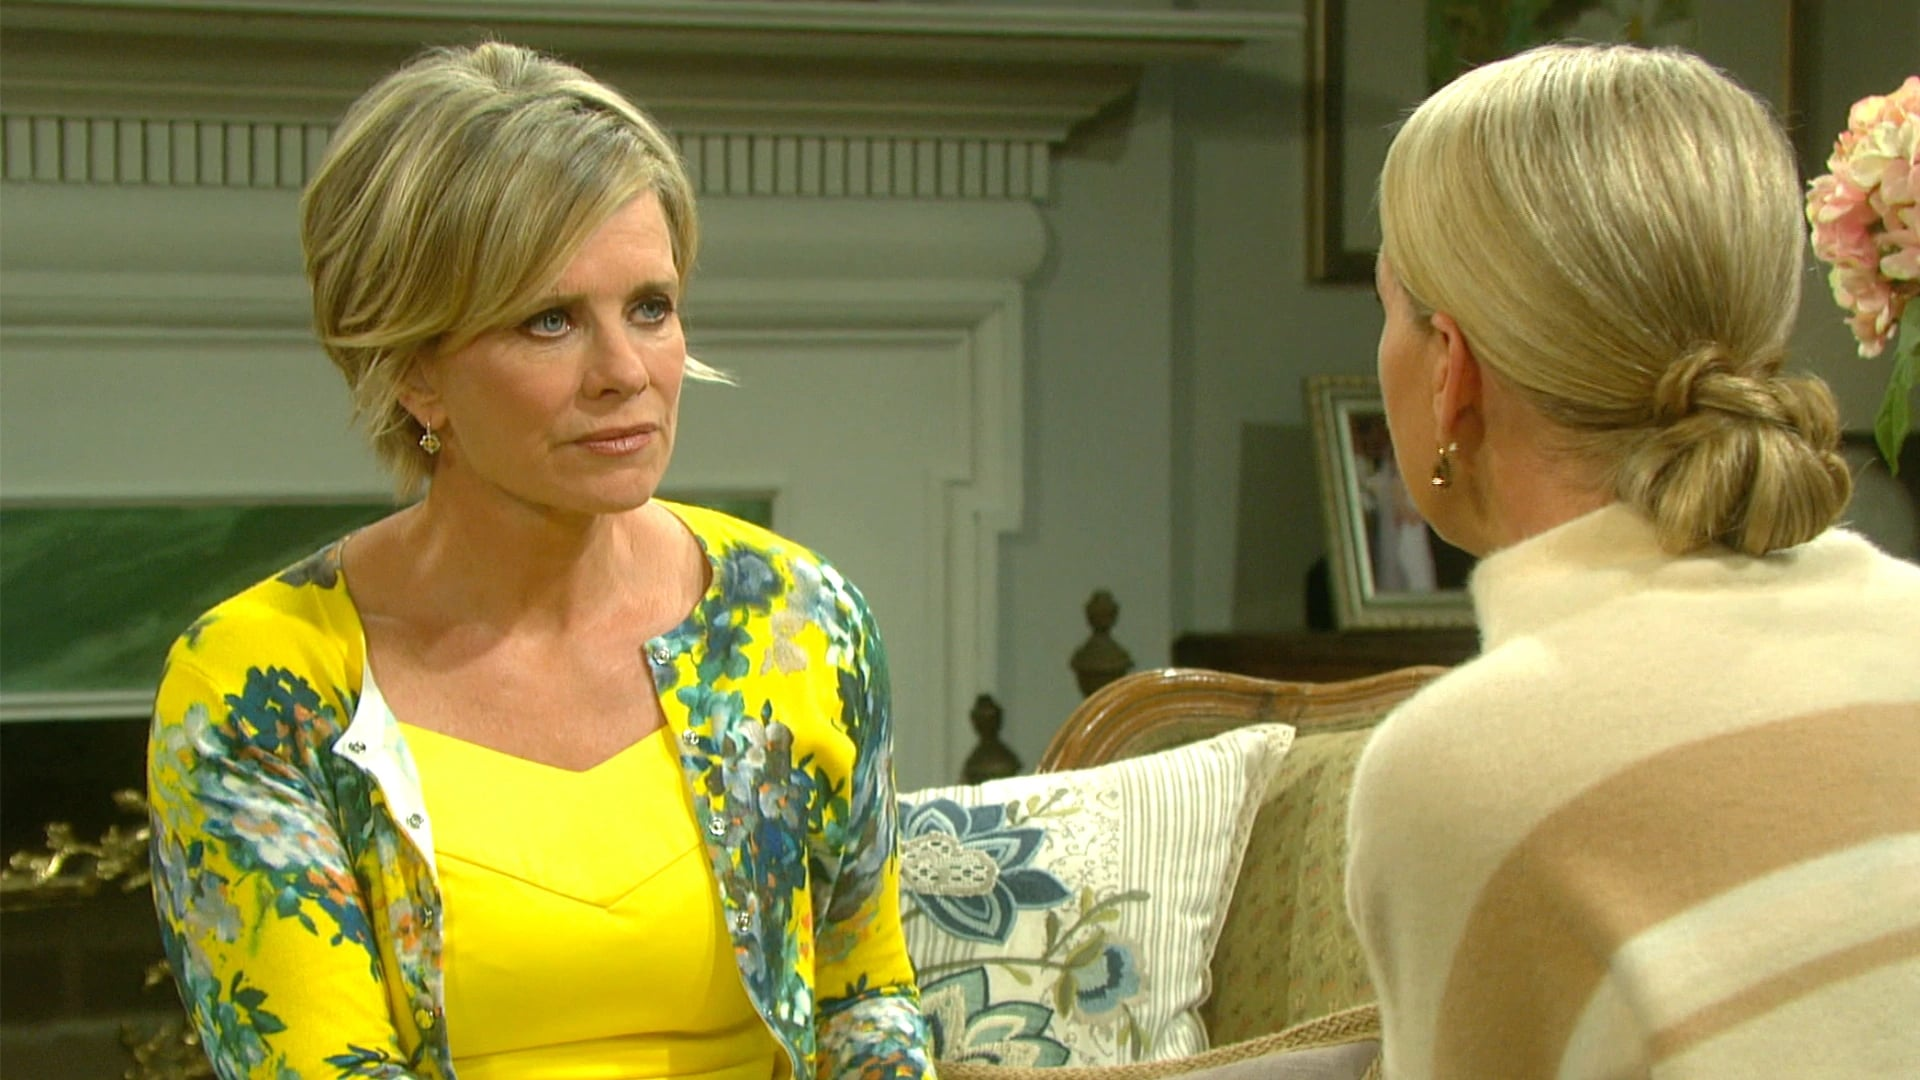 Days of Our Lives Season 54 :Episode 84  Tuesday January 22, 2019